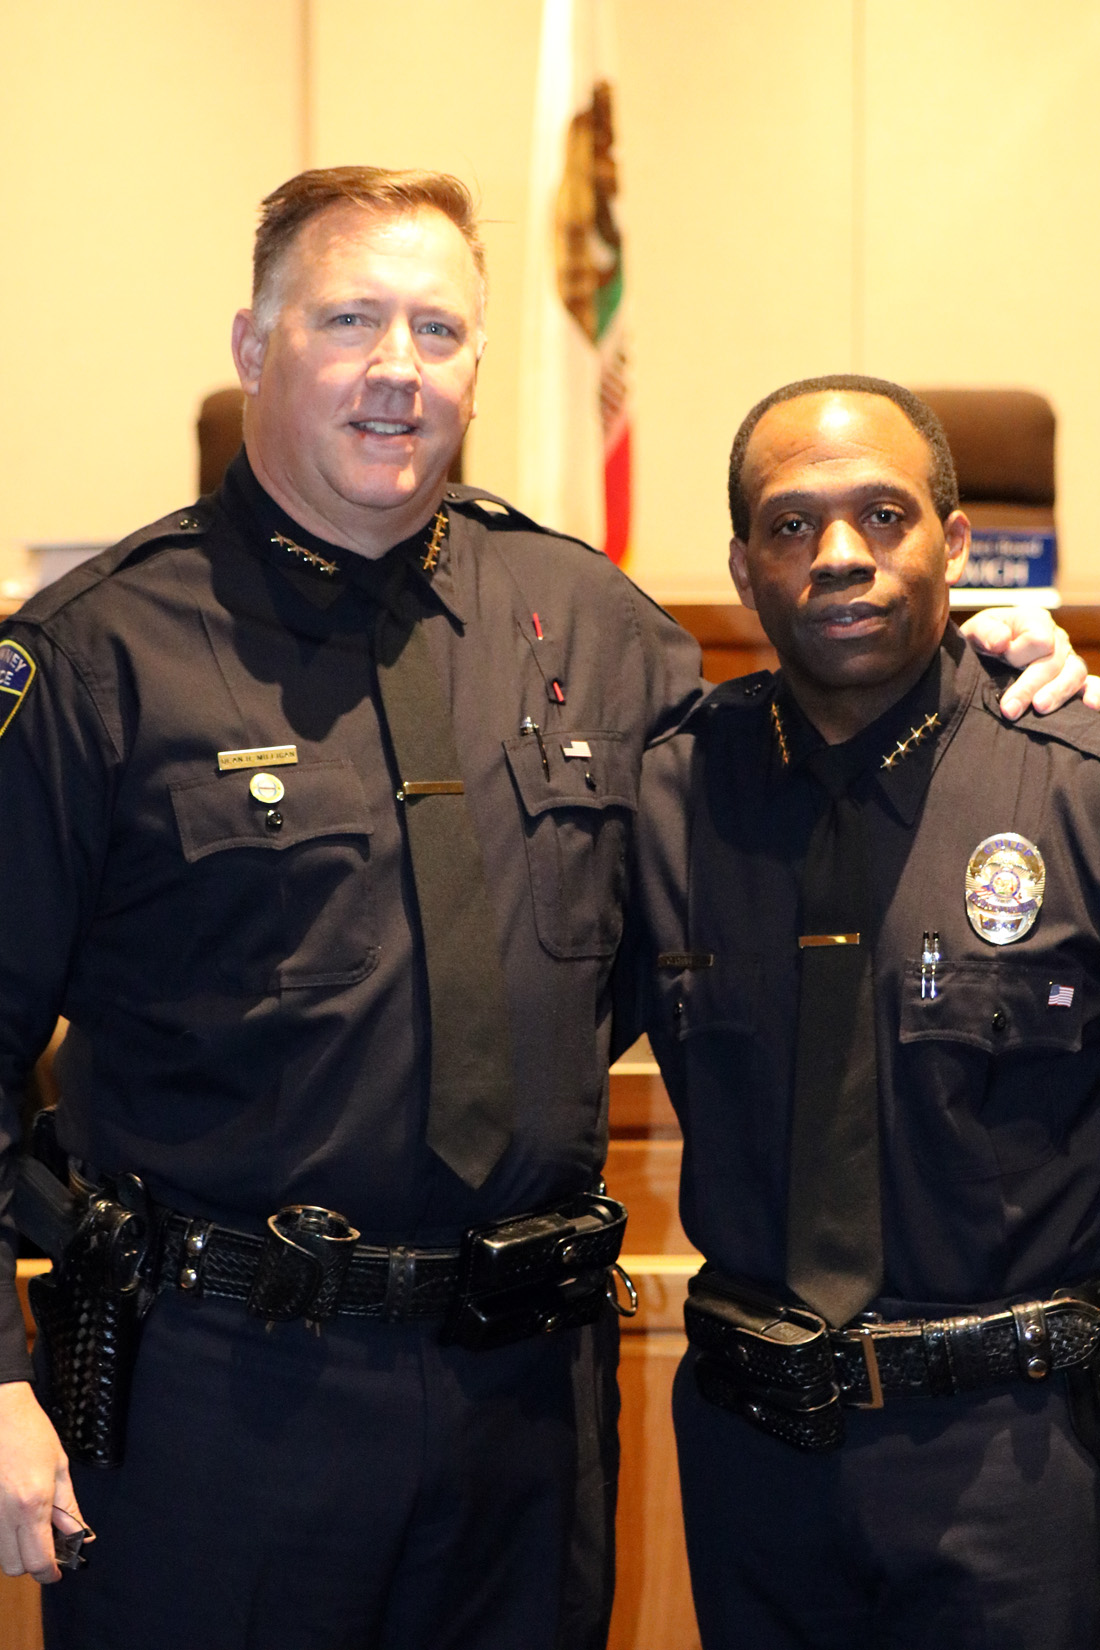 Police Chief Dean Milligan and former Police Chief Carl Charles. Photo by Alex Dominguez